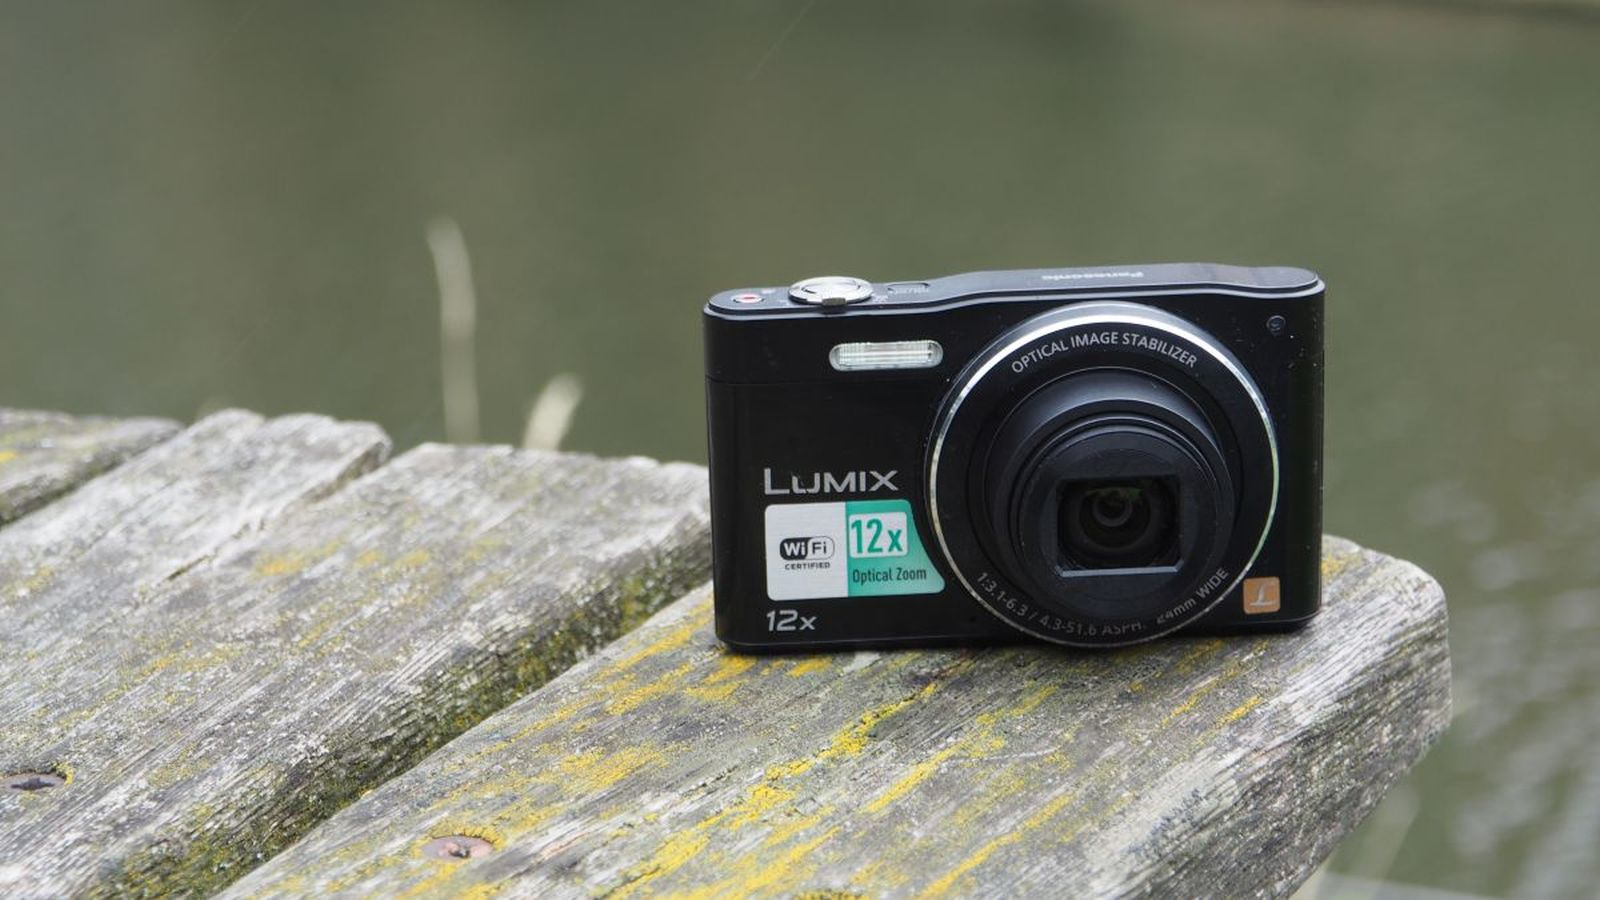 Panasonic Lumix SZ8 Camera Gets Firmware 1 2 – Improved